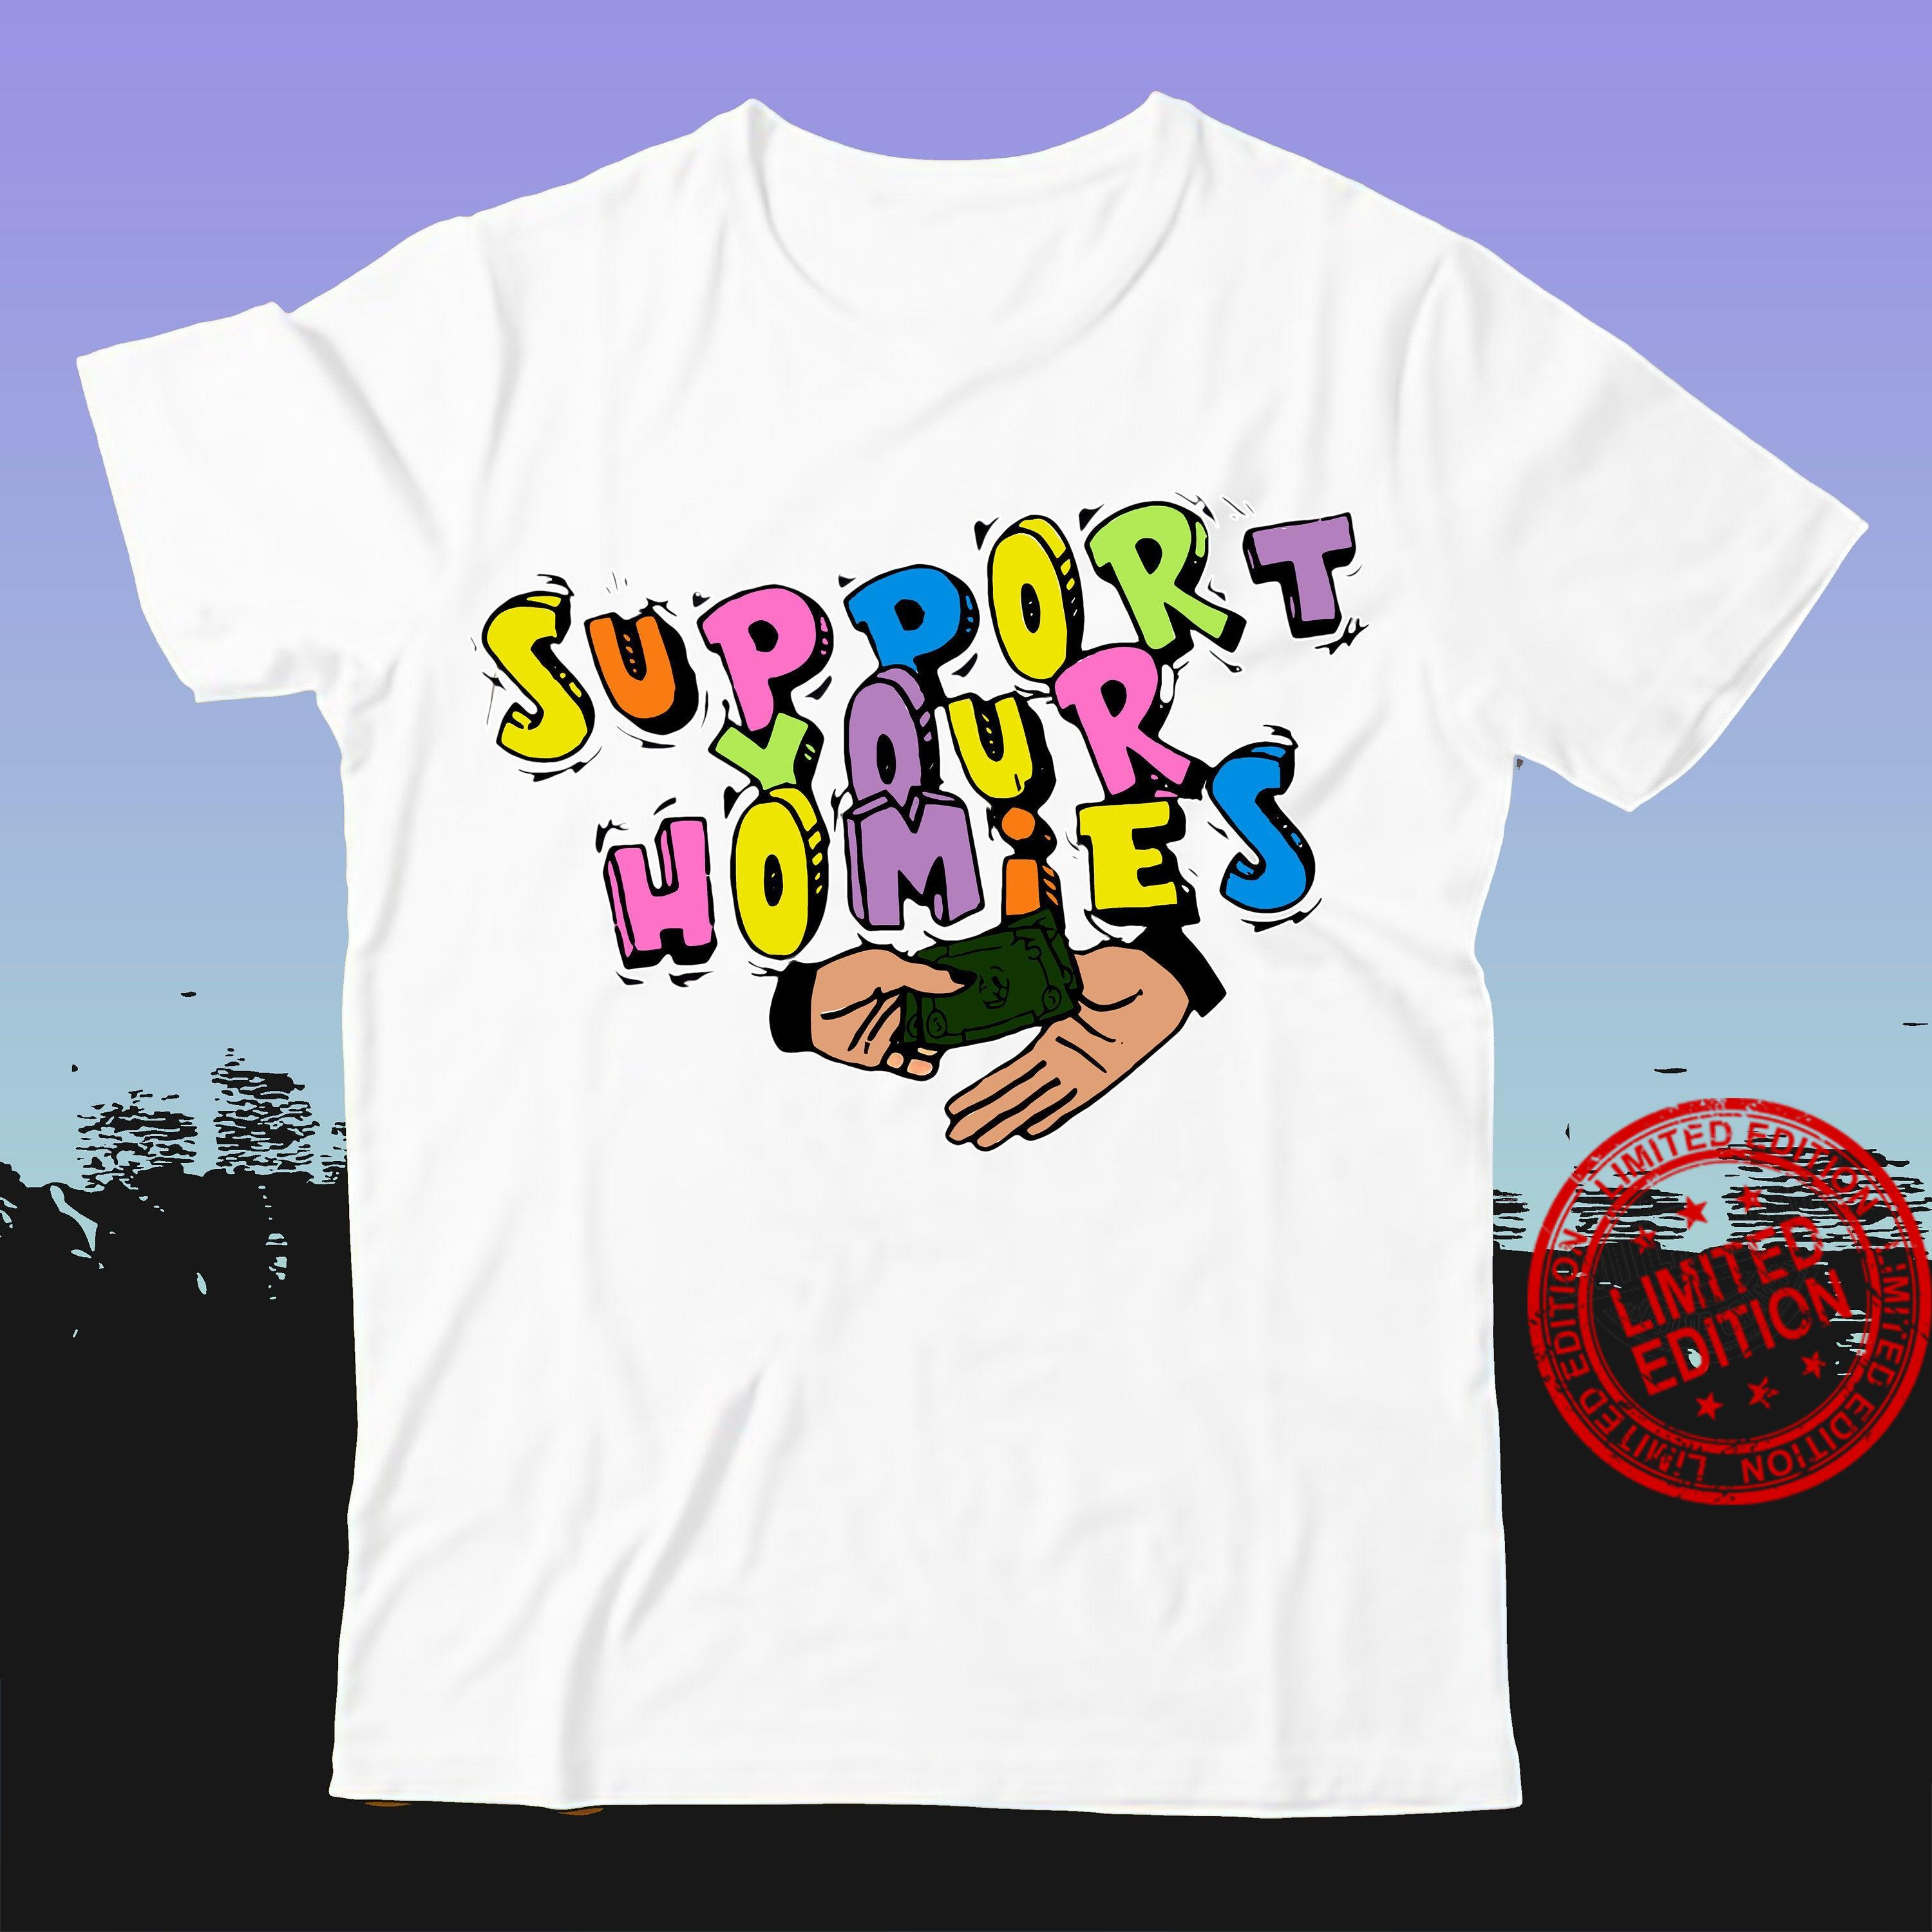 Support Your Homies Shirt